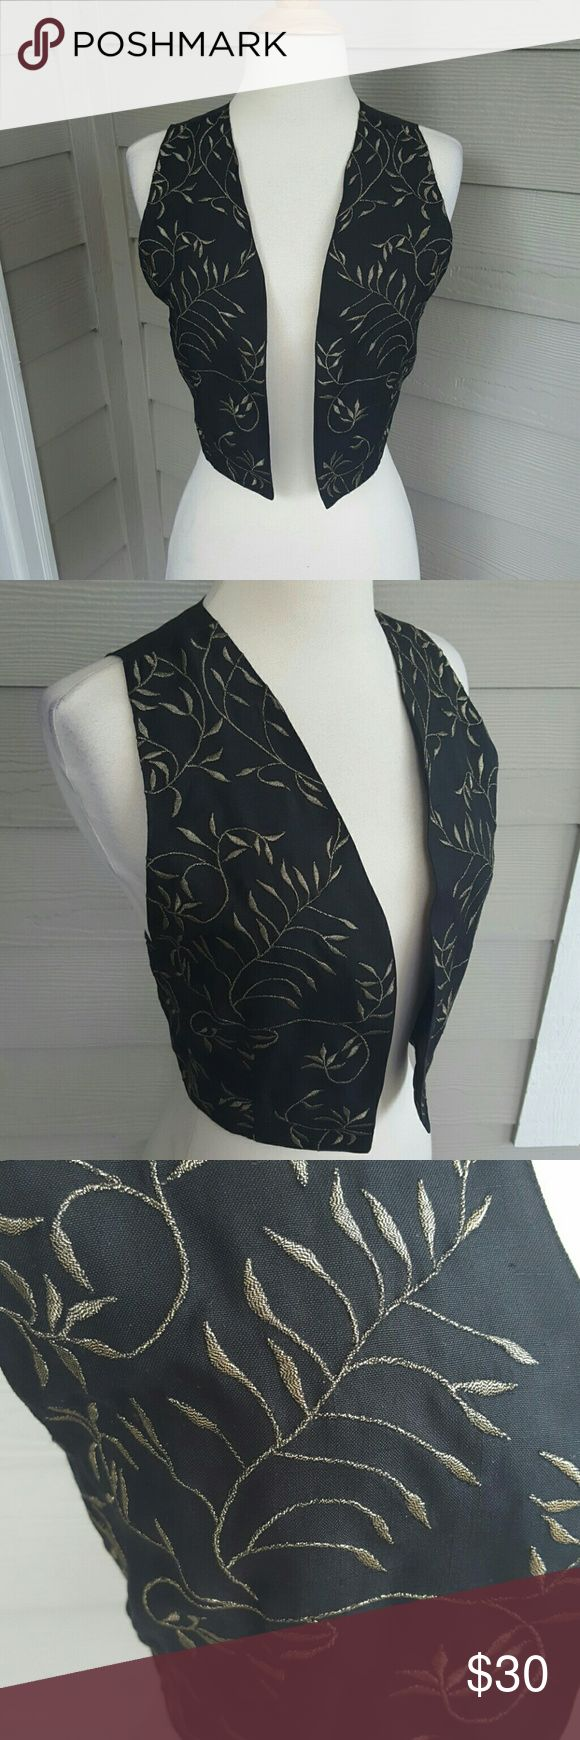 Must Go Vintage 100% Silk Vest Awesome silk black and gold best!  Ties in the back to make it adjustable!  Great floral gold detailing  100% silk and super soft!  Awesome piece  Thanks for shopping Vintage Jackets & Coats Vests